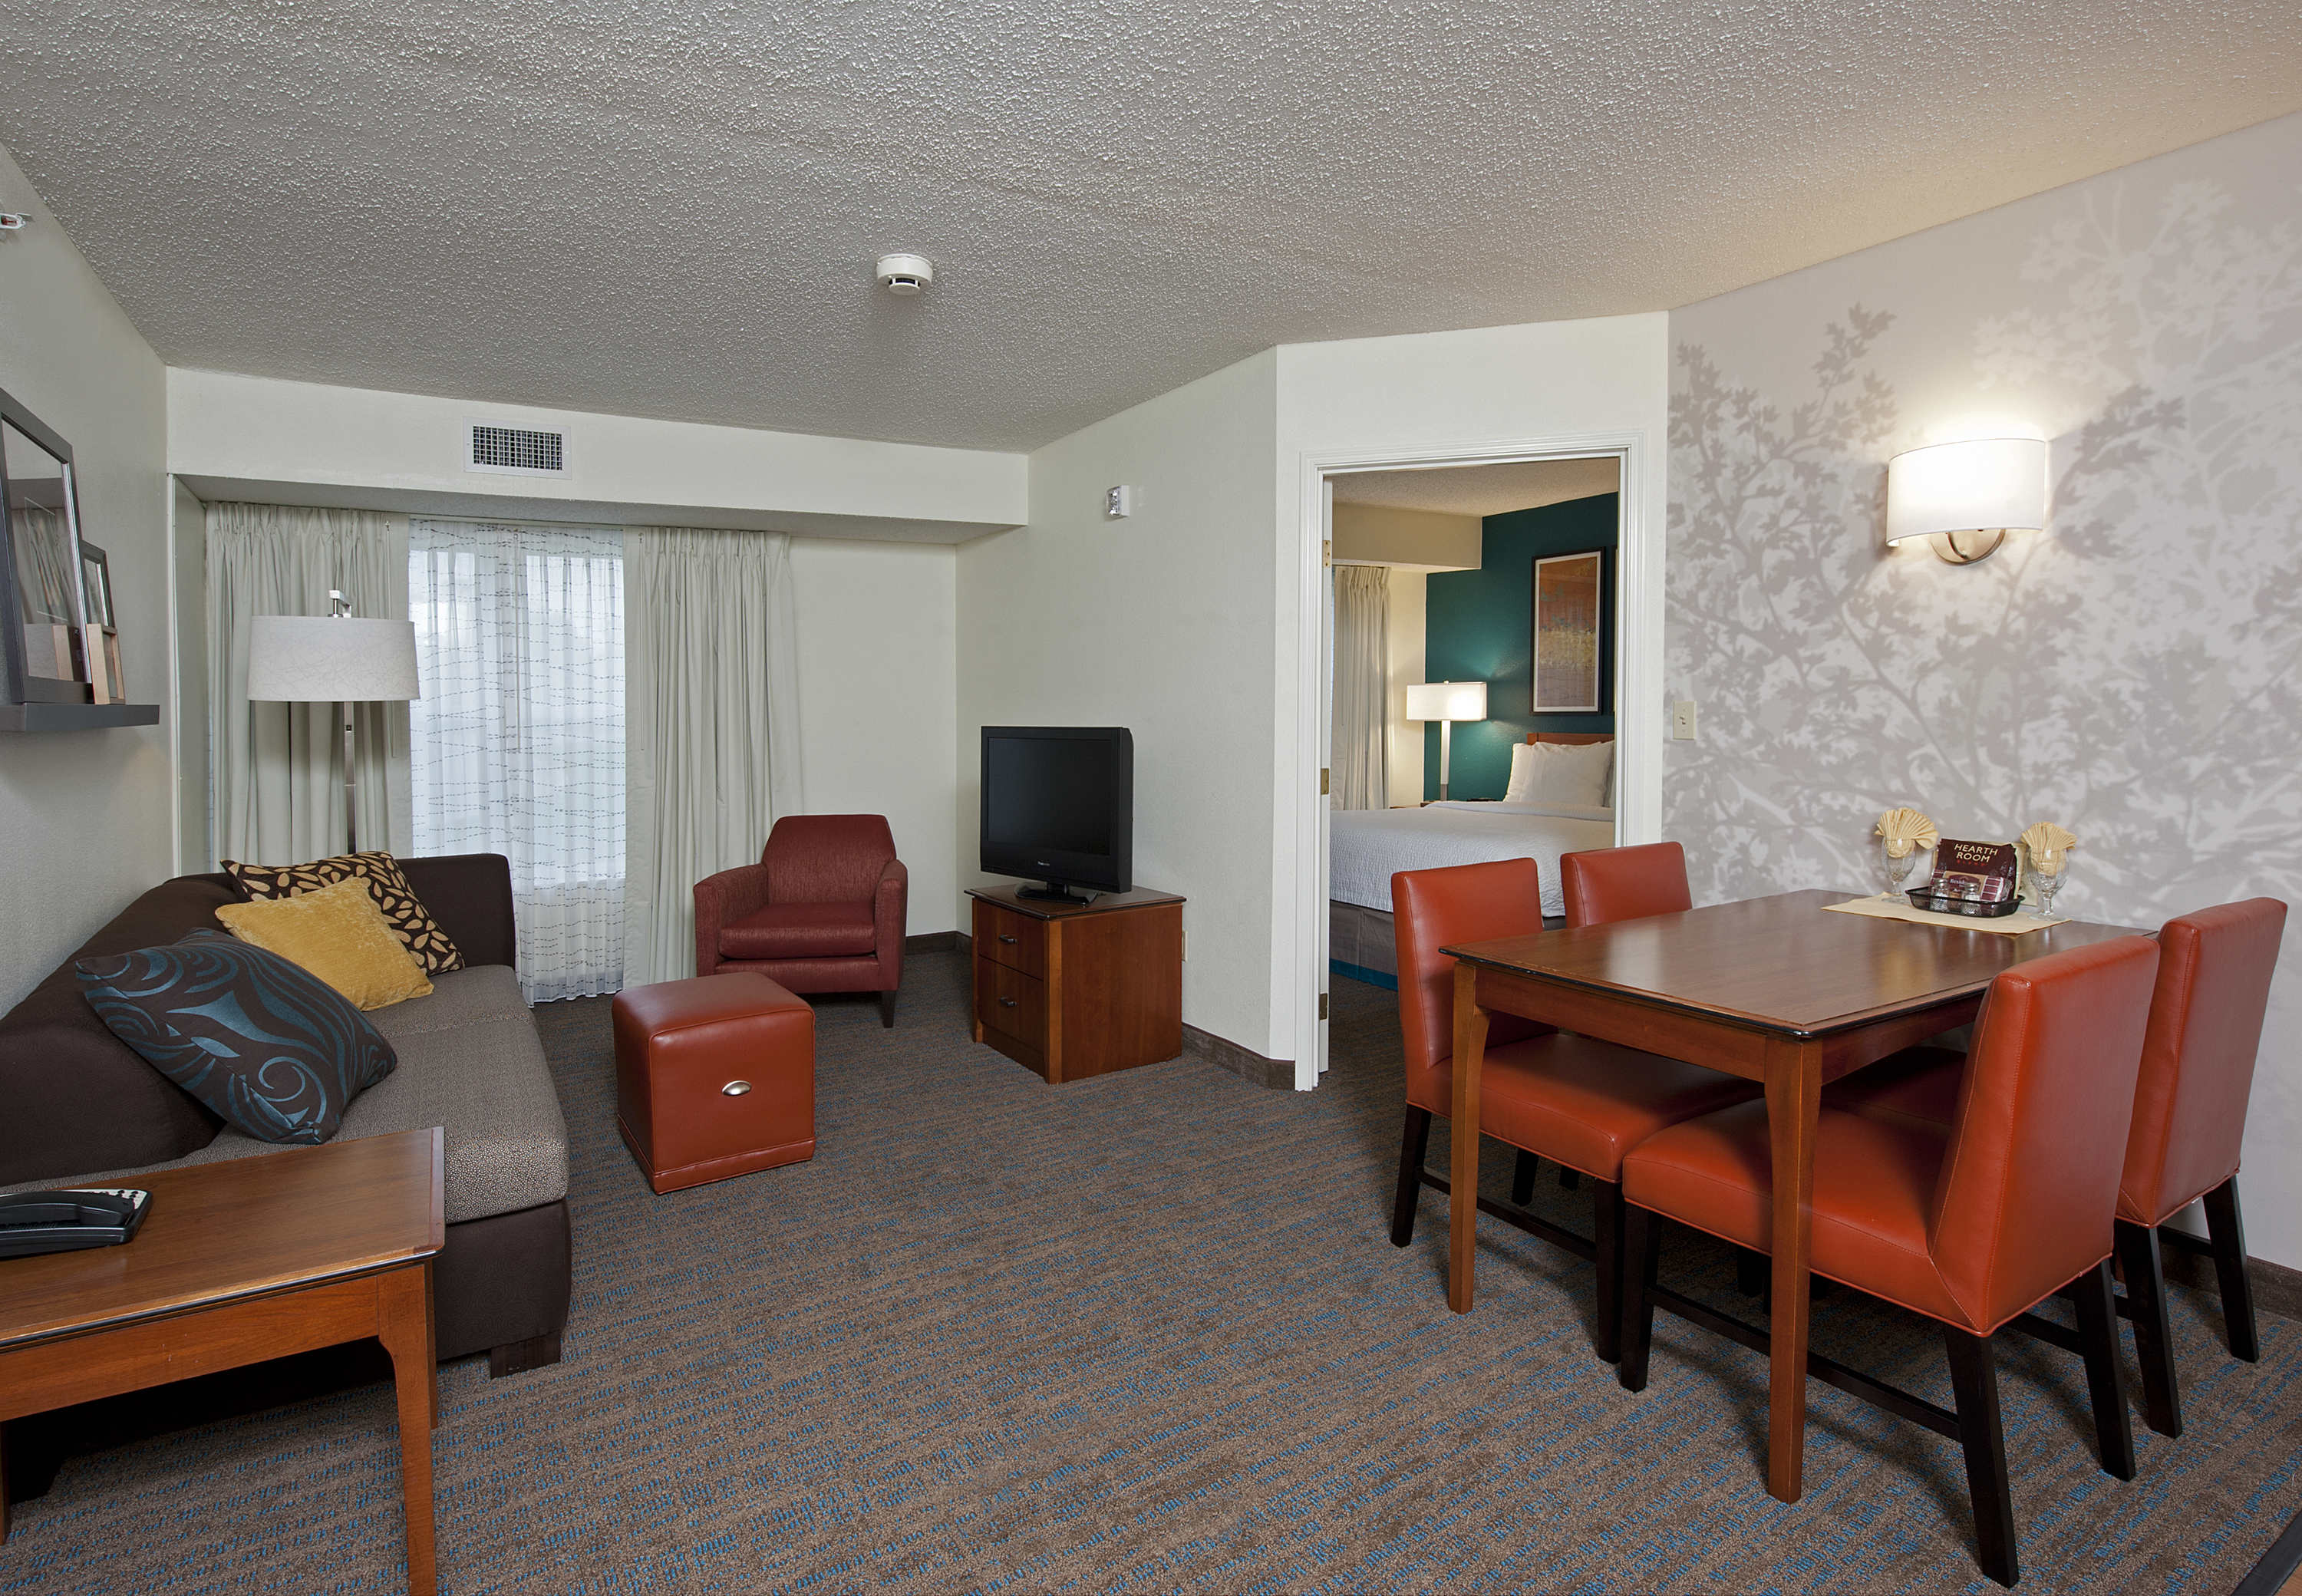 Residence Inn by Marriott Indianapolis Northwest image 2